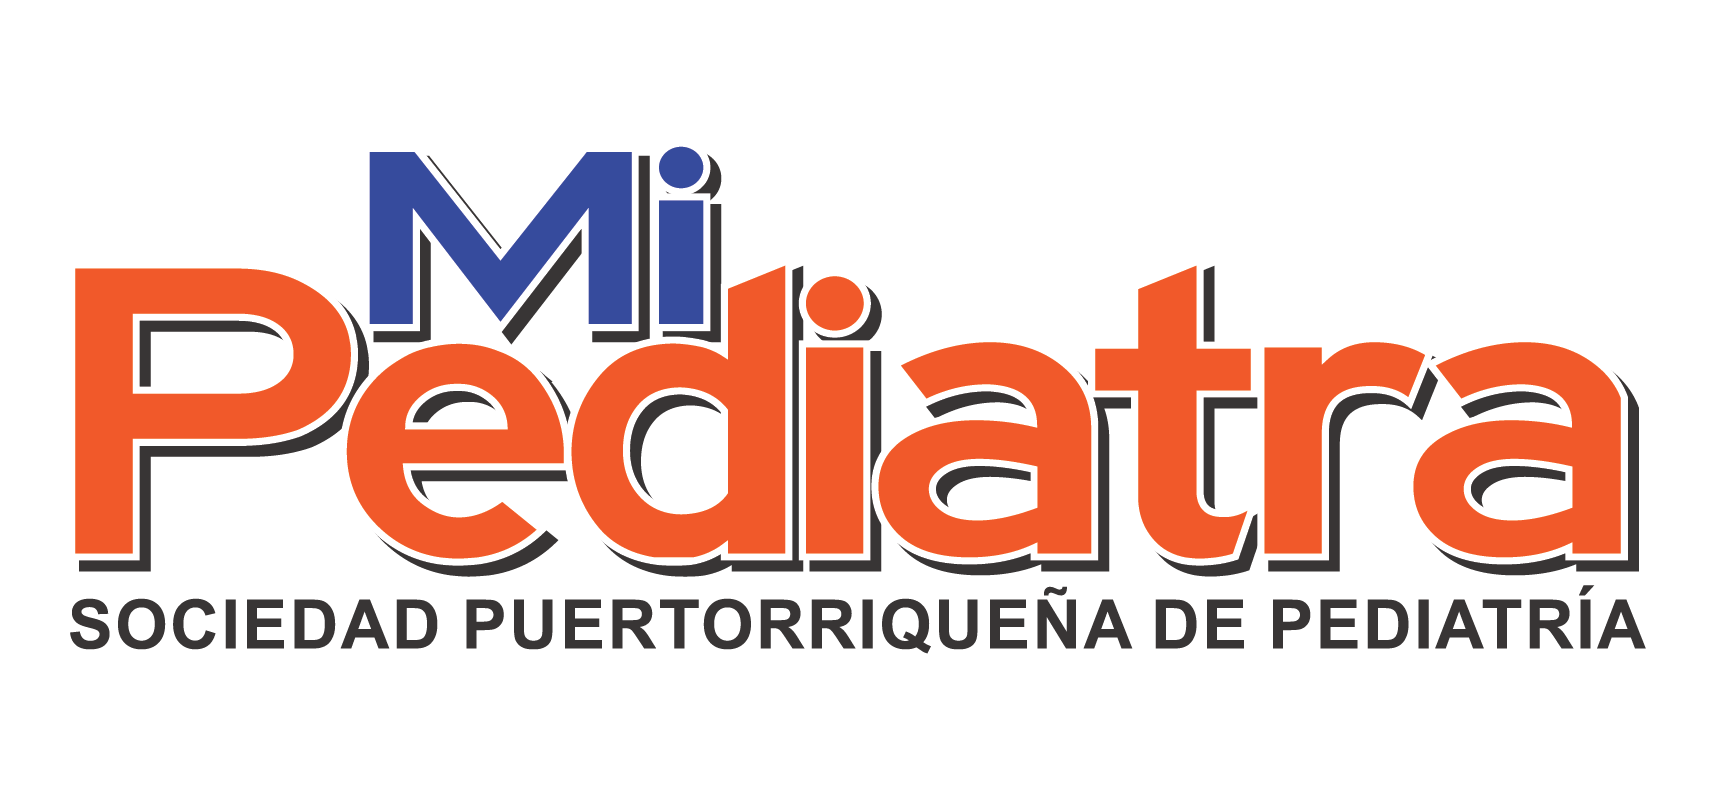 Revista Mi Pediatra